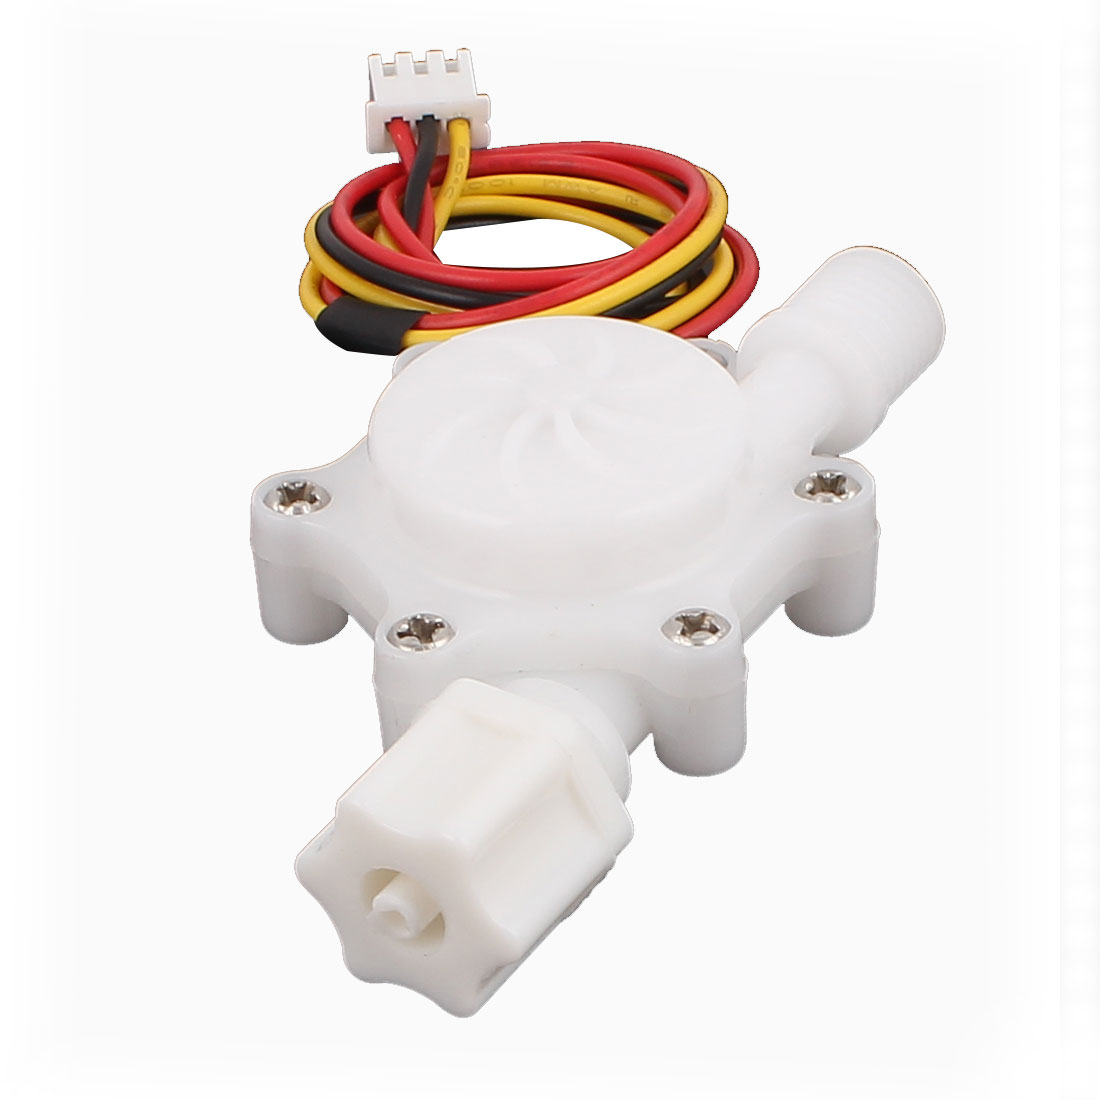 "High Precision 0.2-2.5L/min G1/4"" Thread Water Flow Counter Sensor SEN-HZ06W"